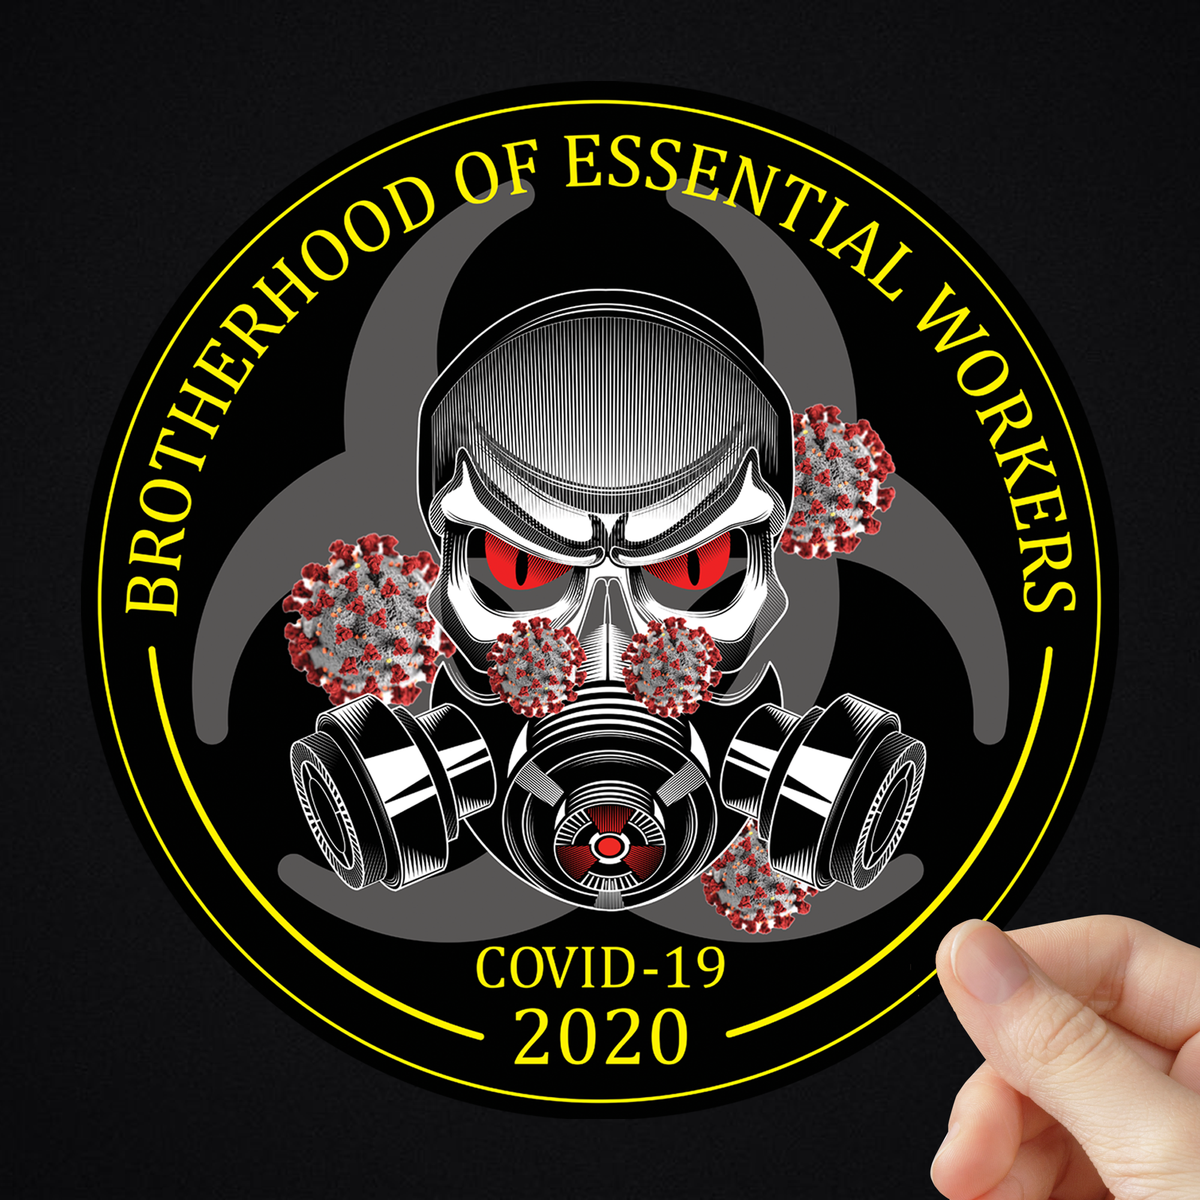 Brotherhood Of Essential Workers Sticker 2 Sizes